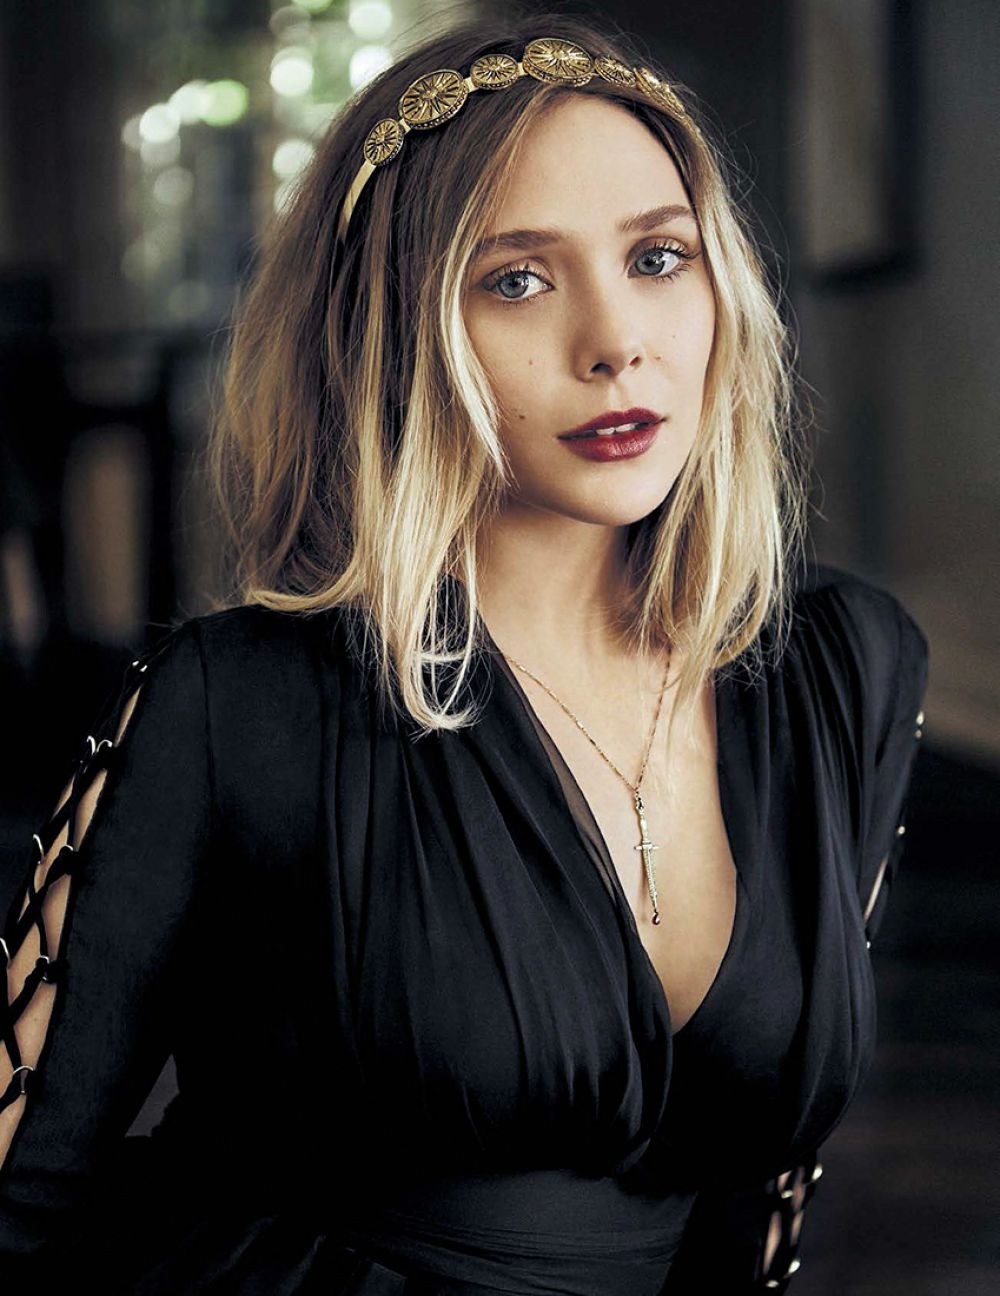 ELIZABETH OLSEN in Vanity Fair magazine, Italy April 2016 Issue